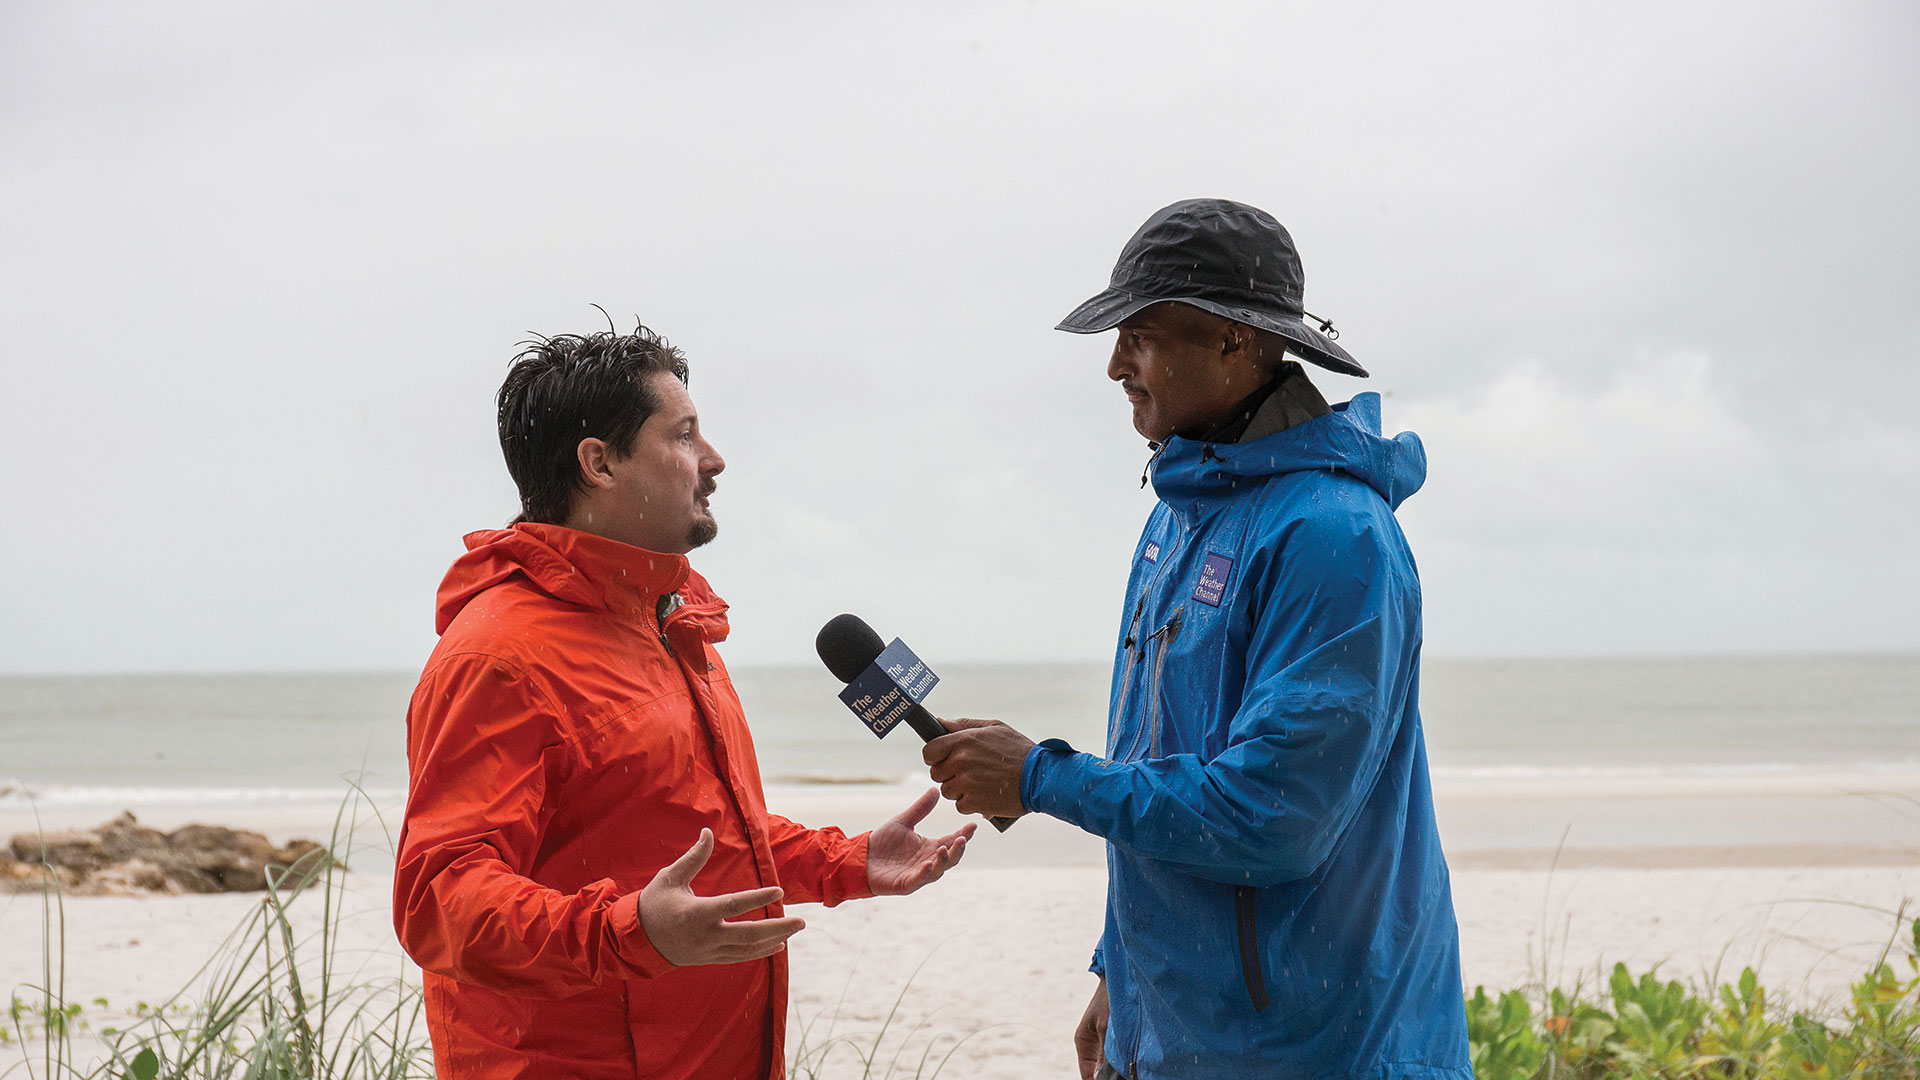 UF wind engineer and hurricane researcher Forrest Masters was interviewed on The Weather Channel after setting up research equipment in Irma's path in South Florida.